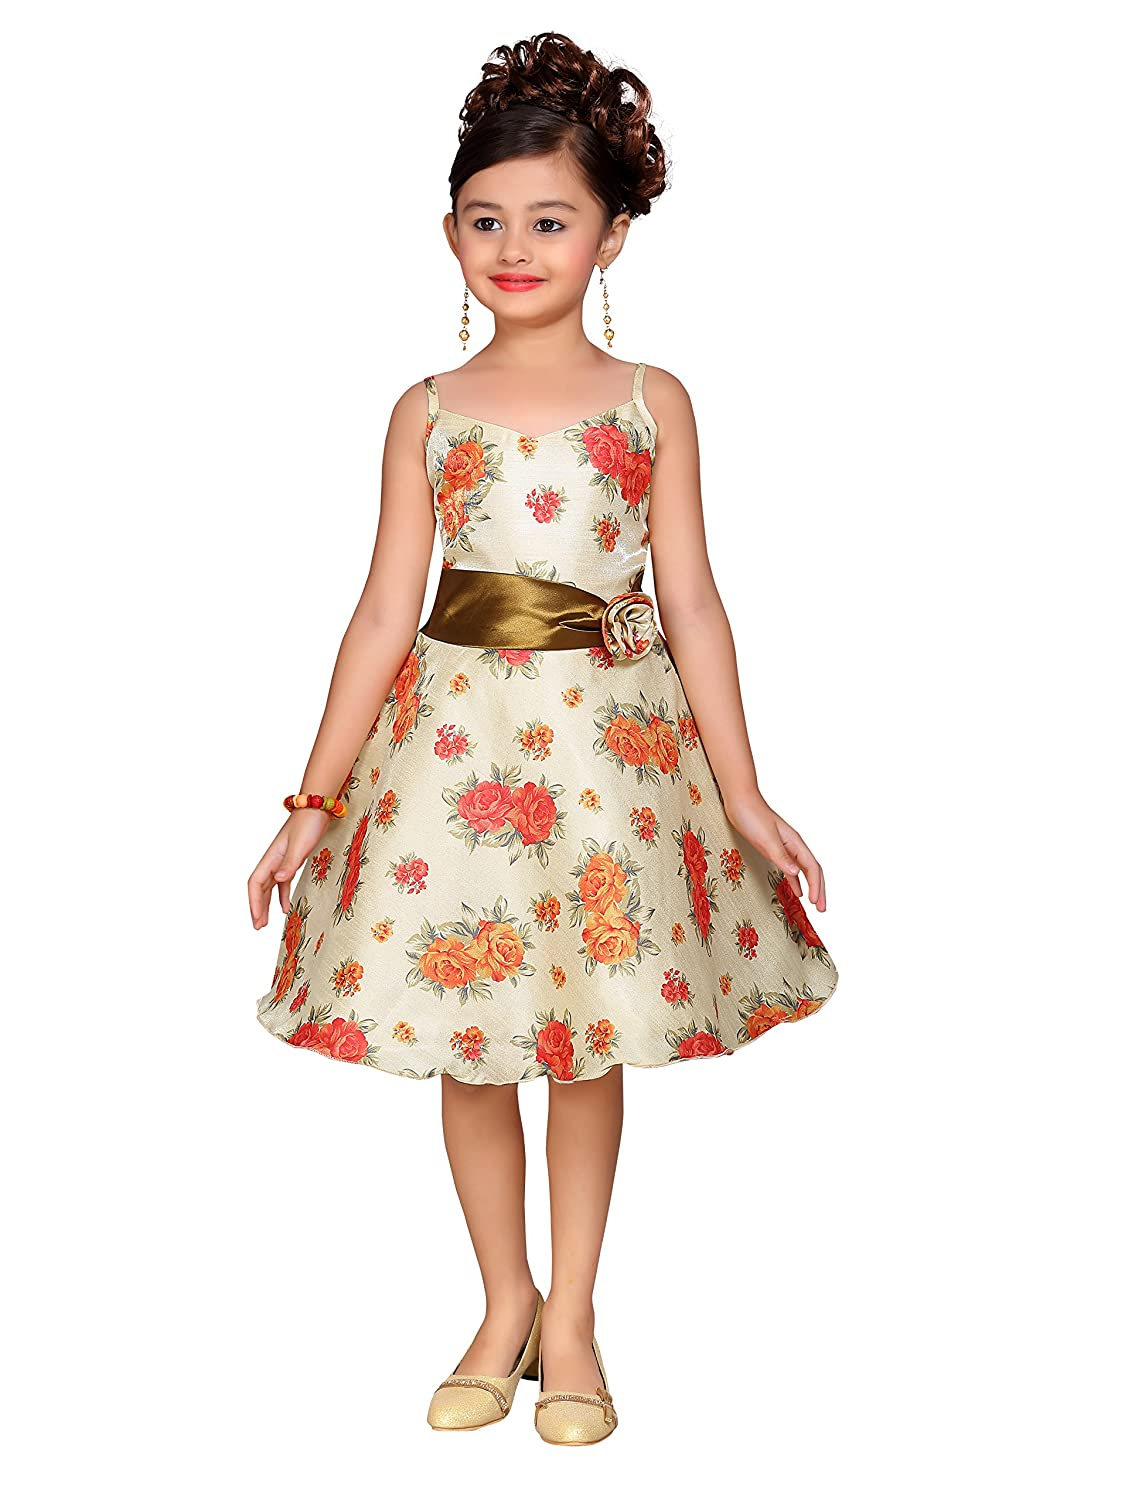 1f96d54070703 Fabric: Satin || Style: Empire Waist Dress, Fit Type: Regular Fit & Flare  Stylish and Trendy || Ideal for Festive Event, Functions, Holiday &  Wedding, ...